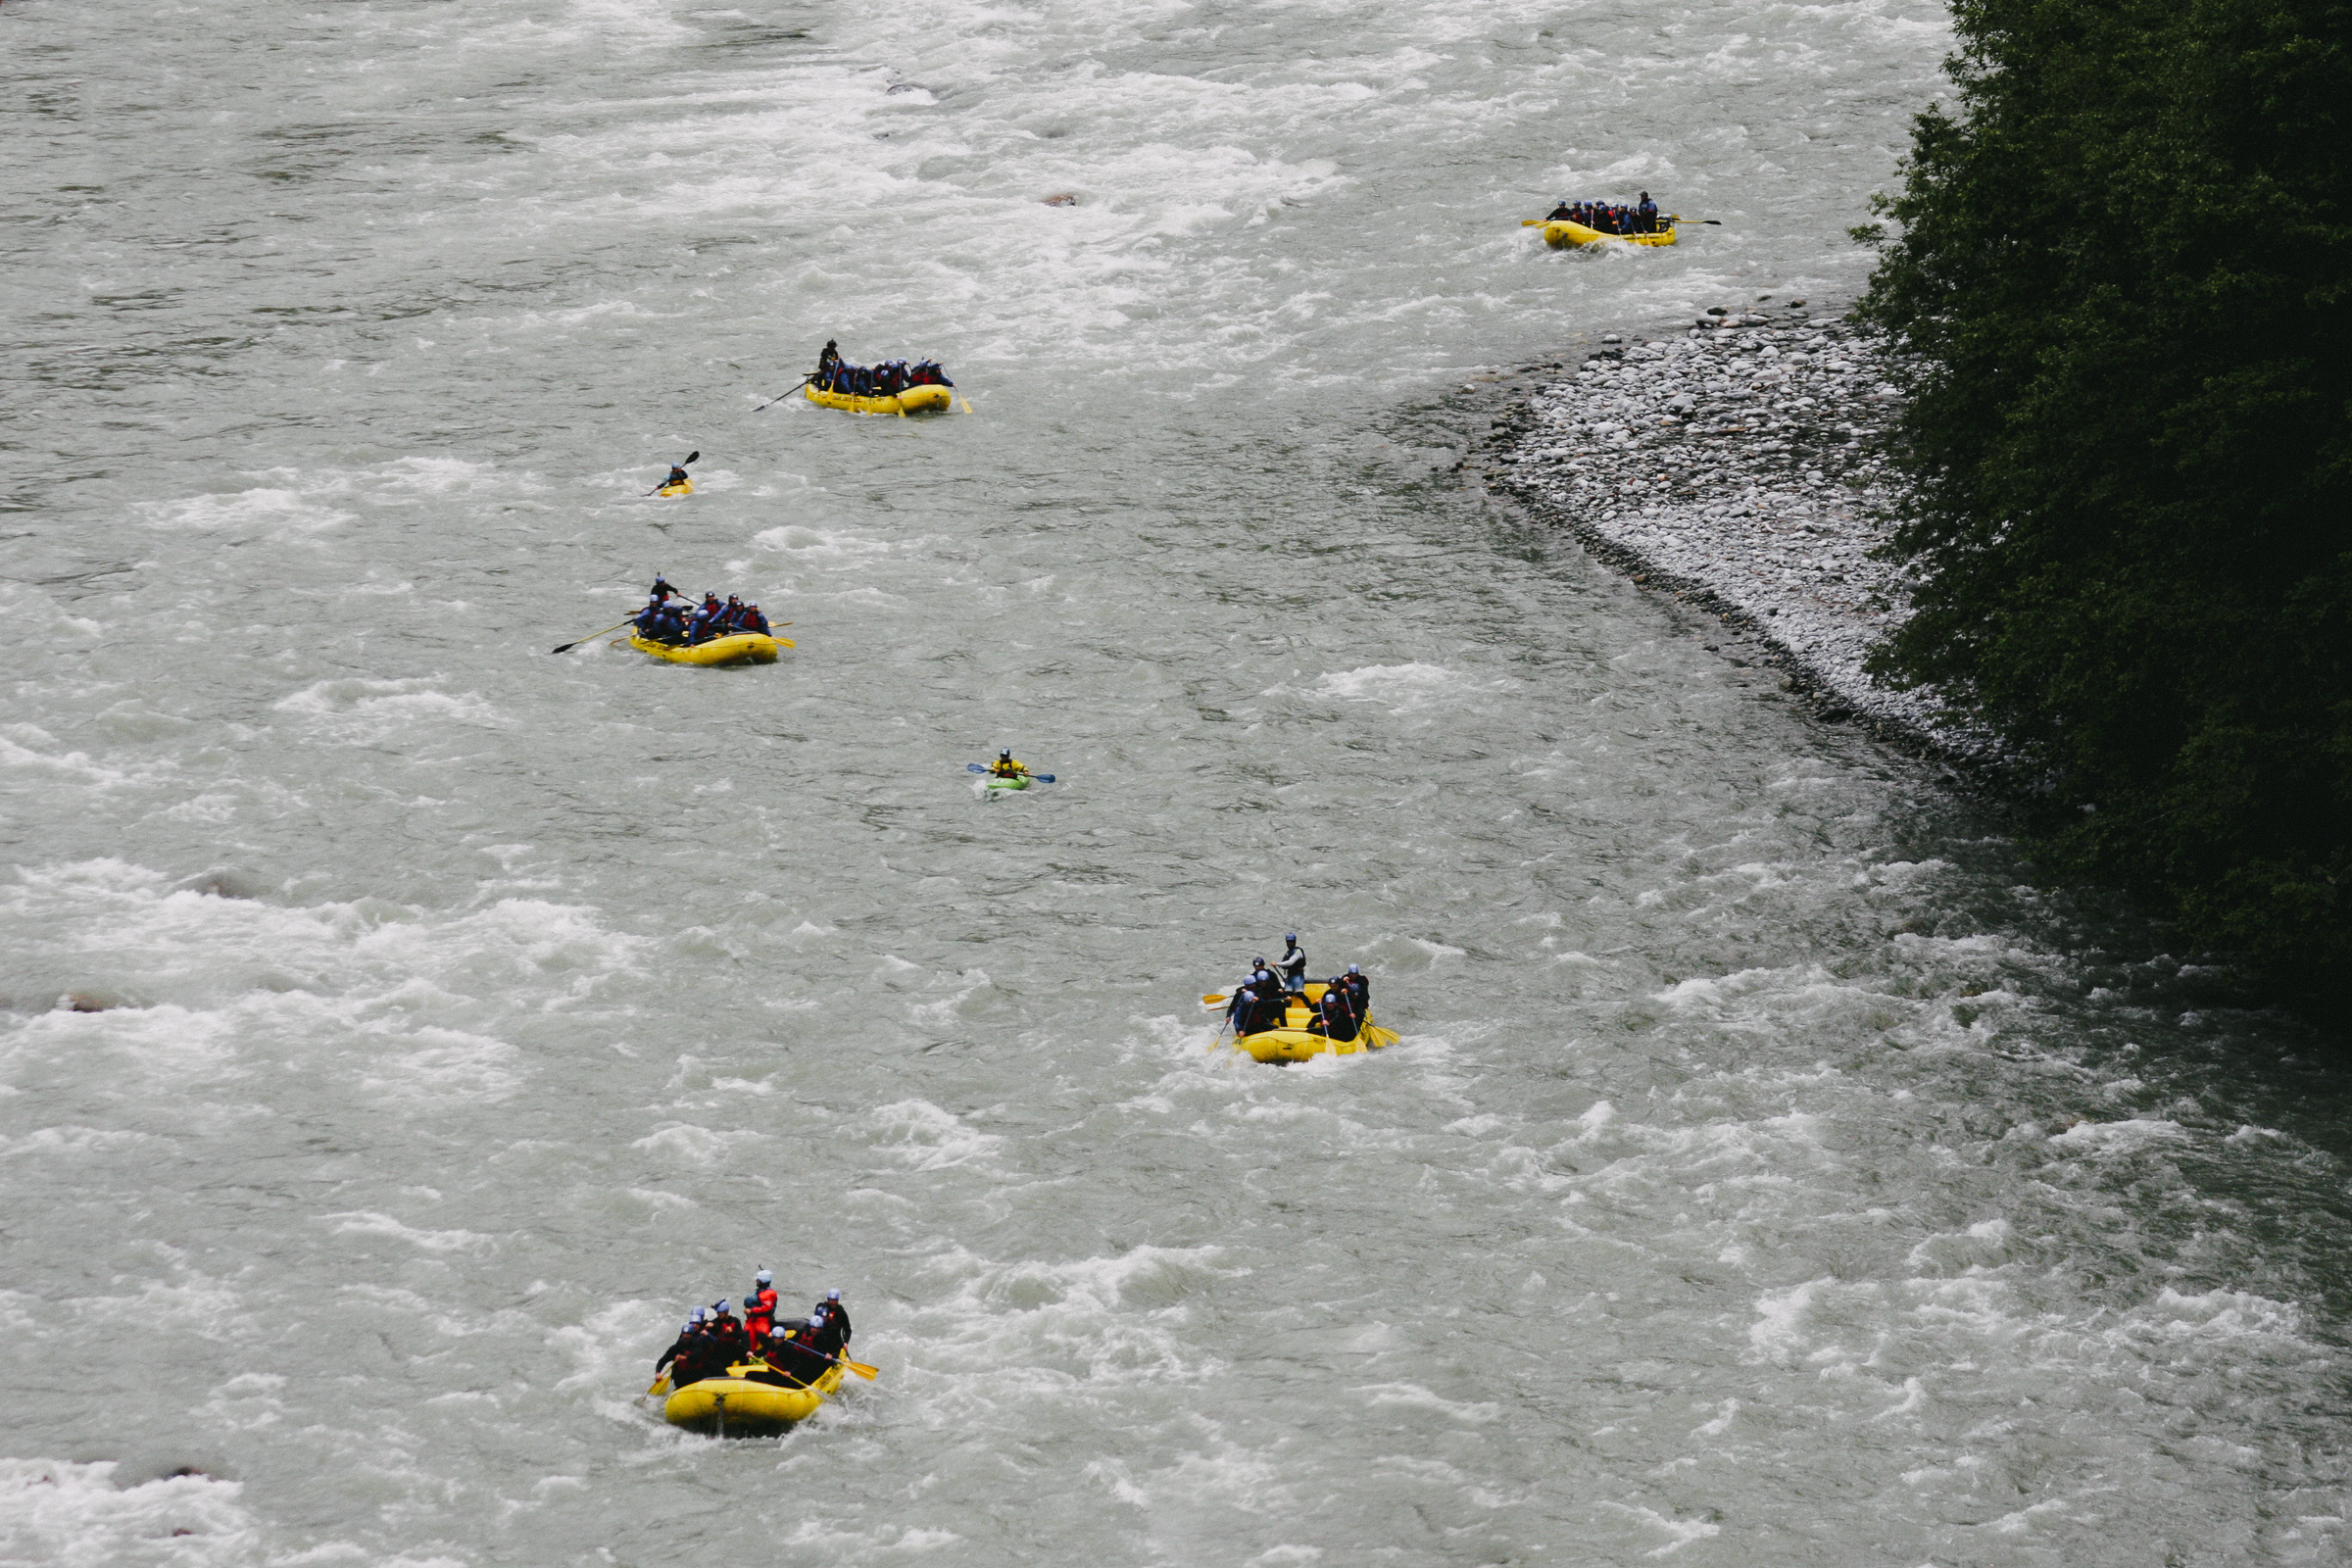 Rafting down the Elaho, Squamish BC